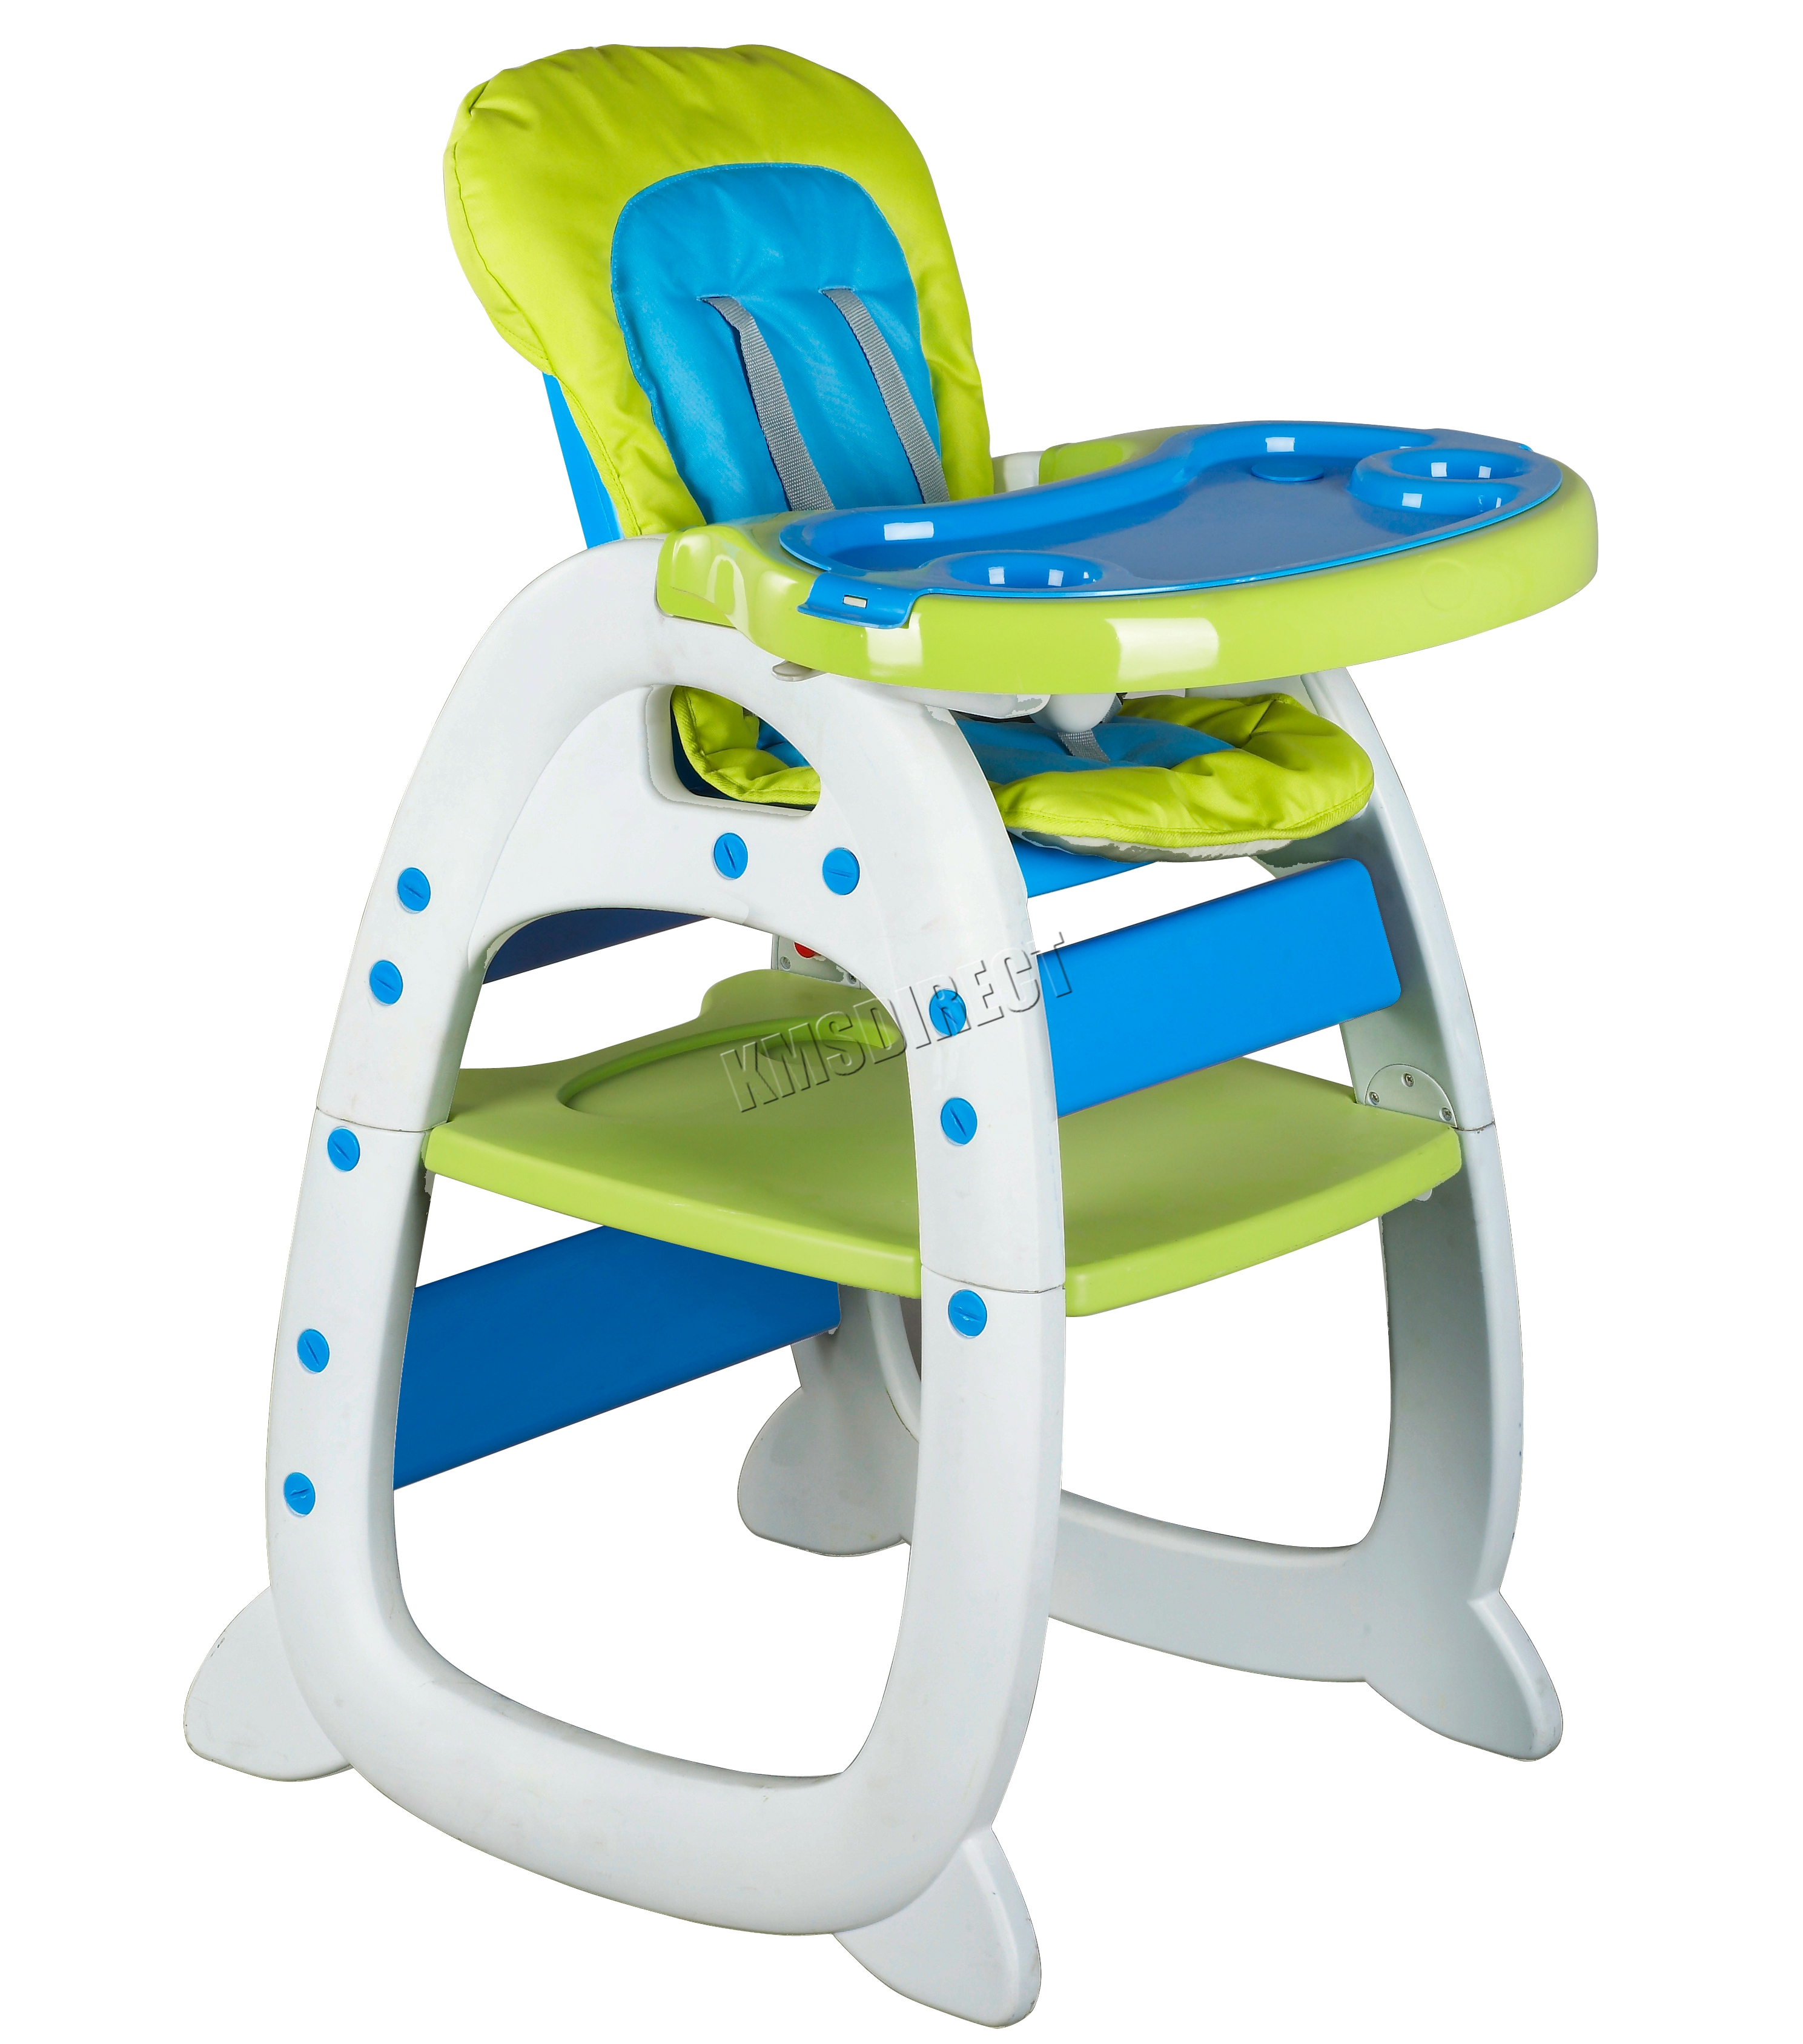 baby feeding chairs in sri lanka bedroom chair john lewis foxhunter highchair infant high seat 3in1